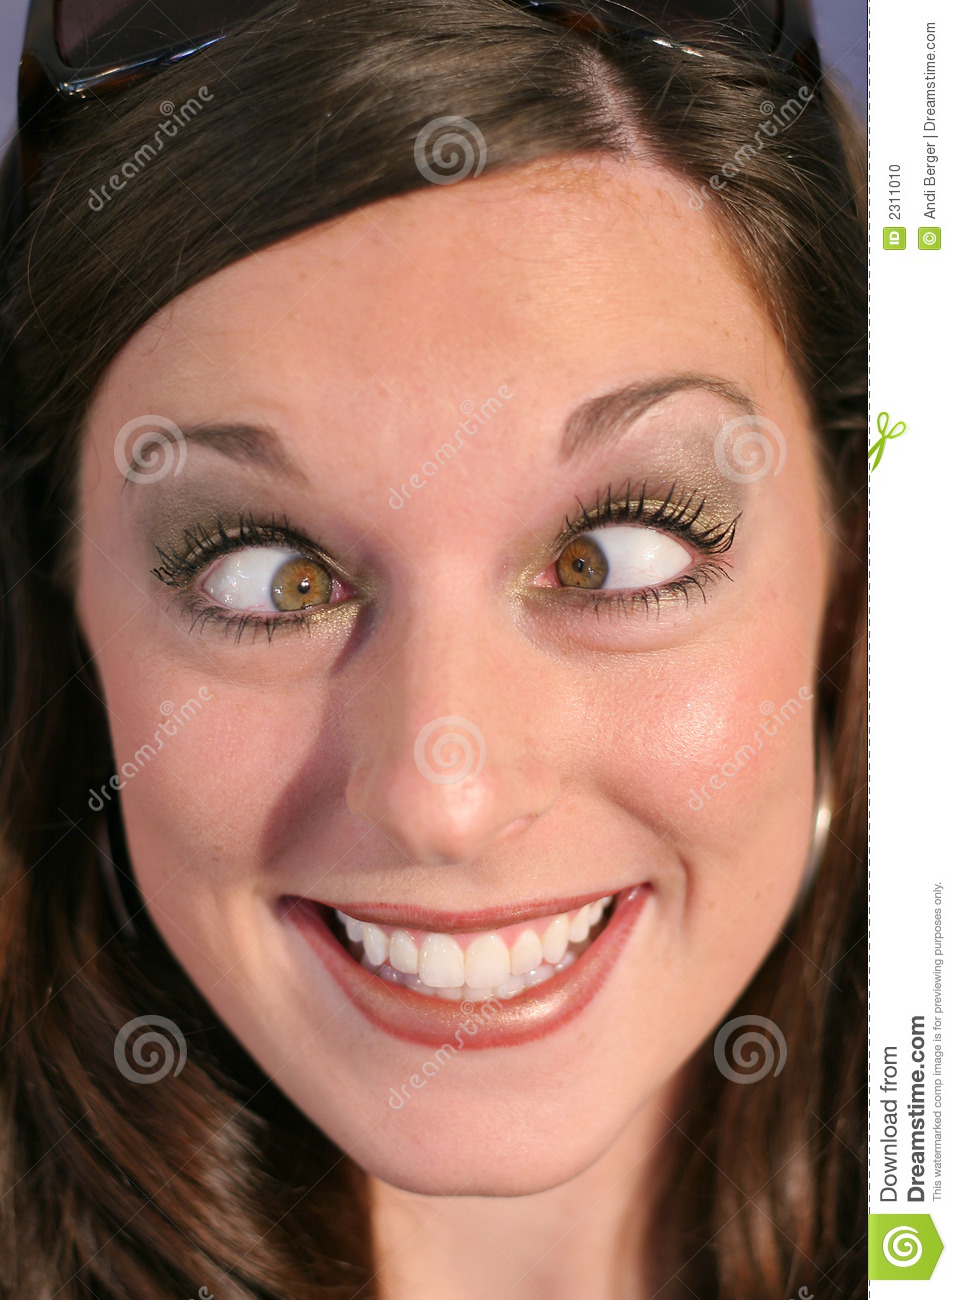 Cross Eyed Funny Face Woman Stock Photo Image 2311010